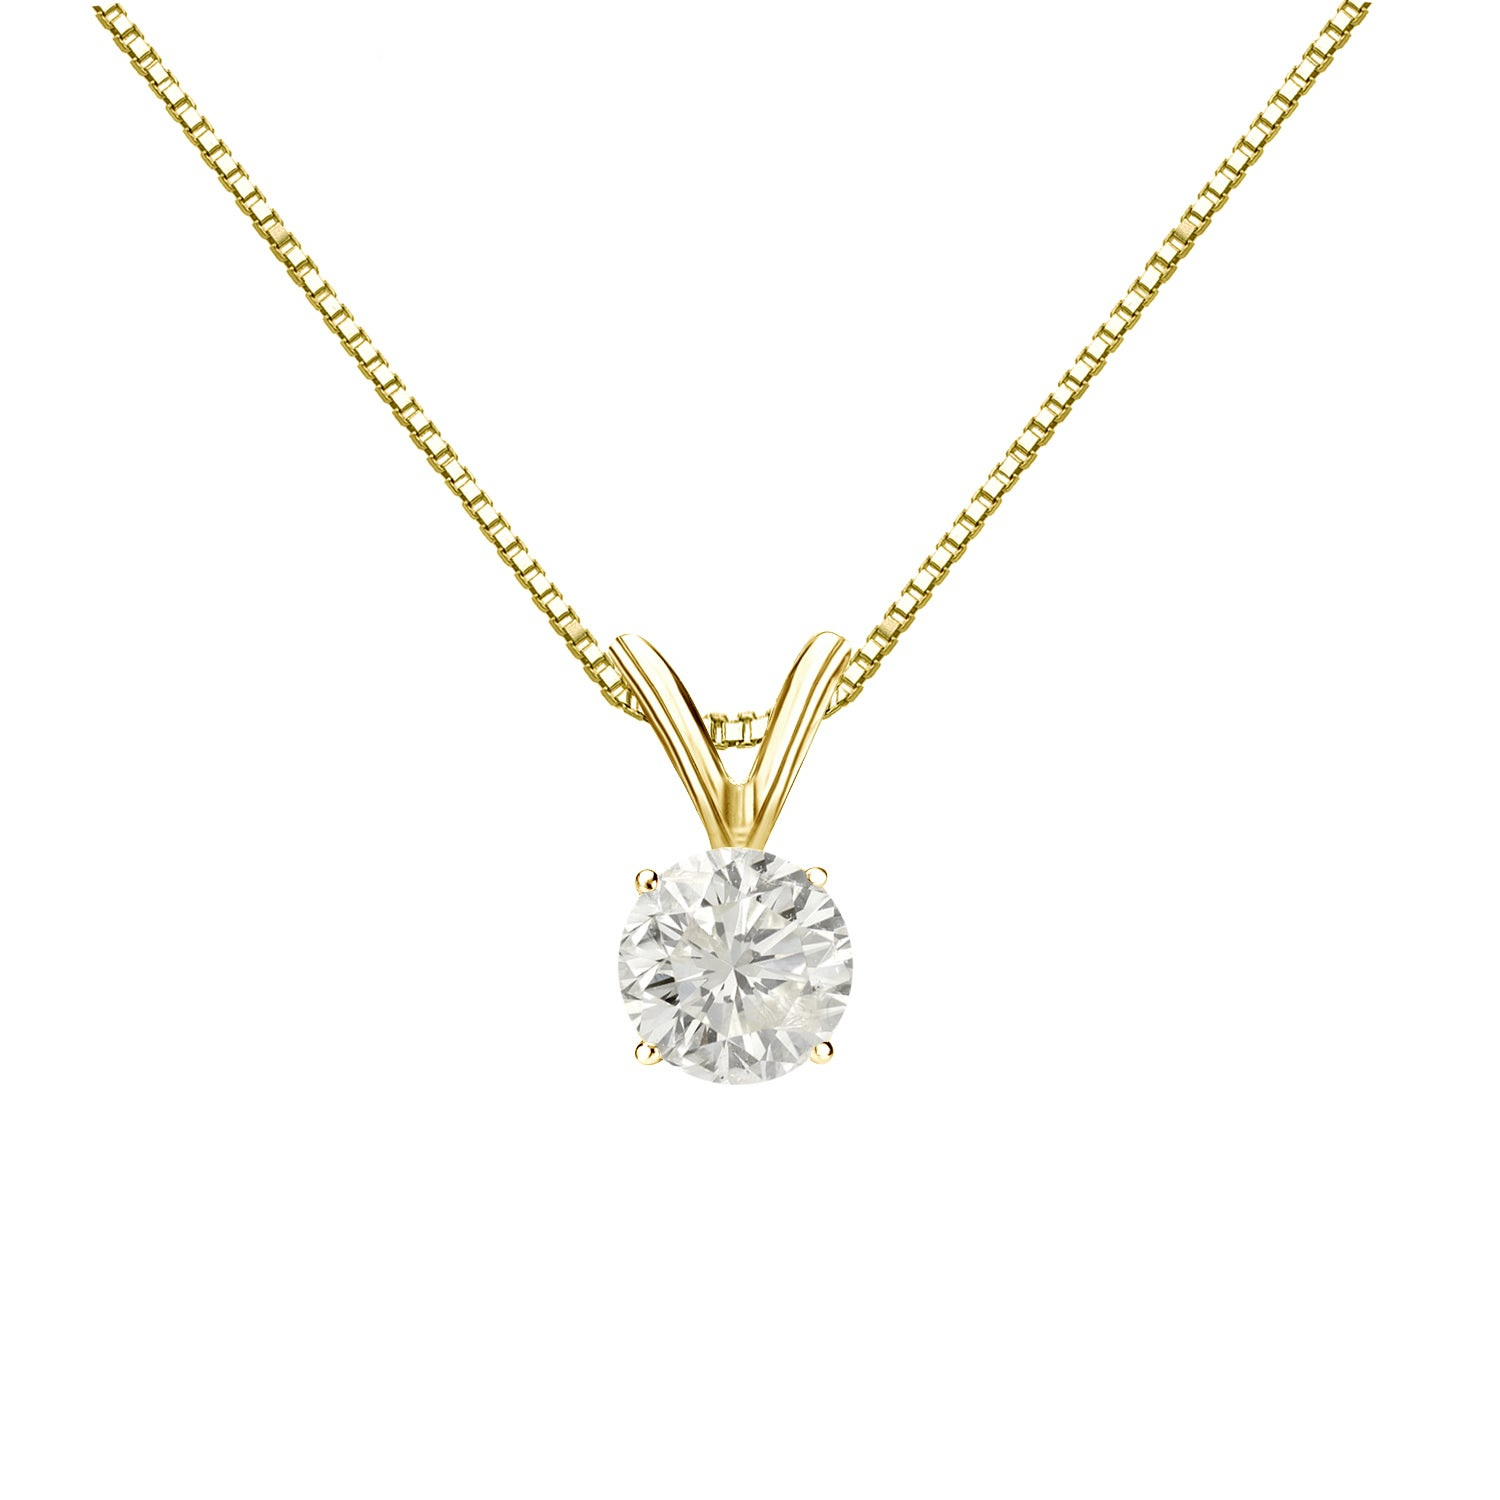 h necklace diamond brilliant necklaces solitaire round gold costco recipename color imageservice ctw white imageid i clarity profileid